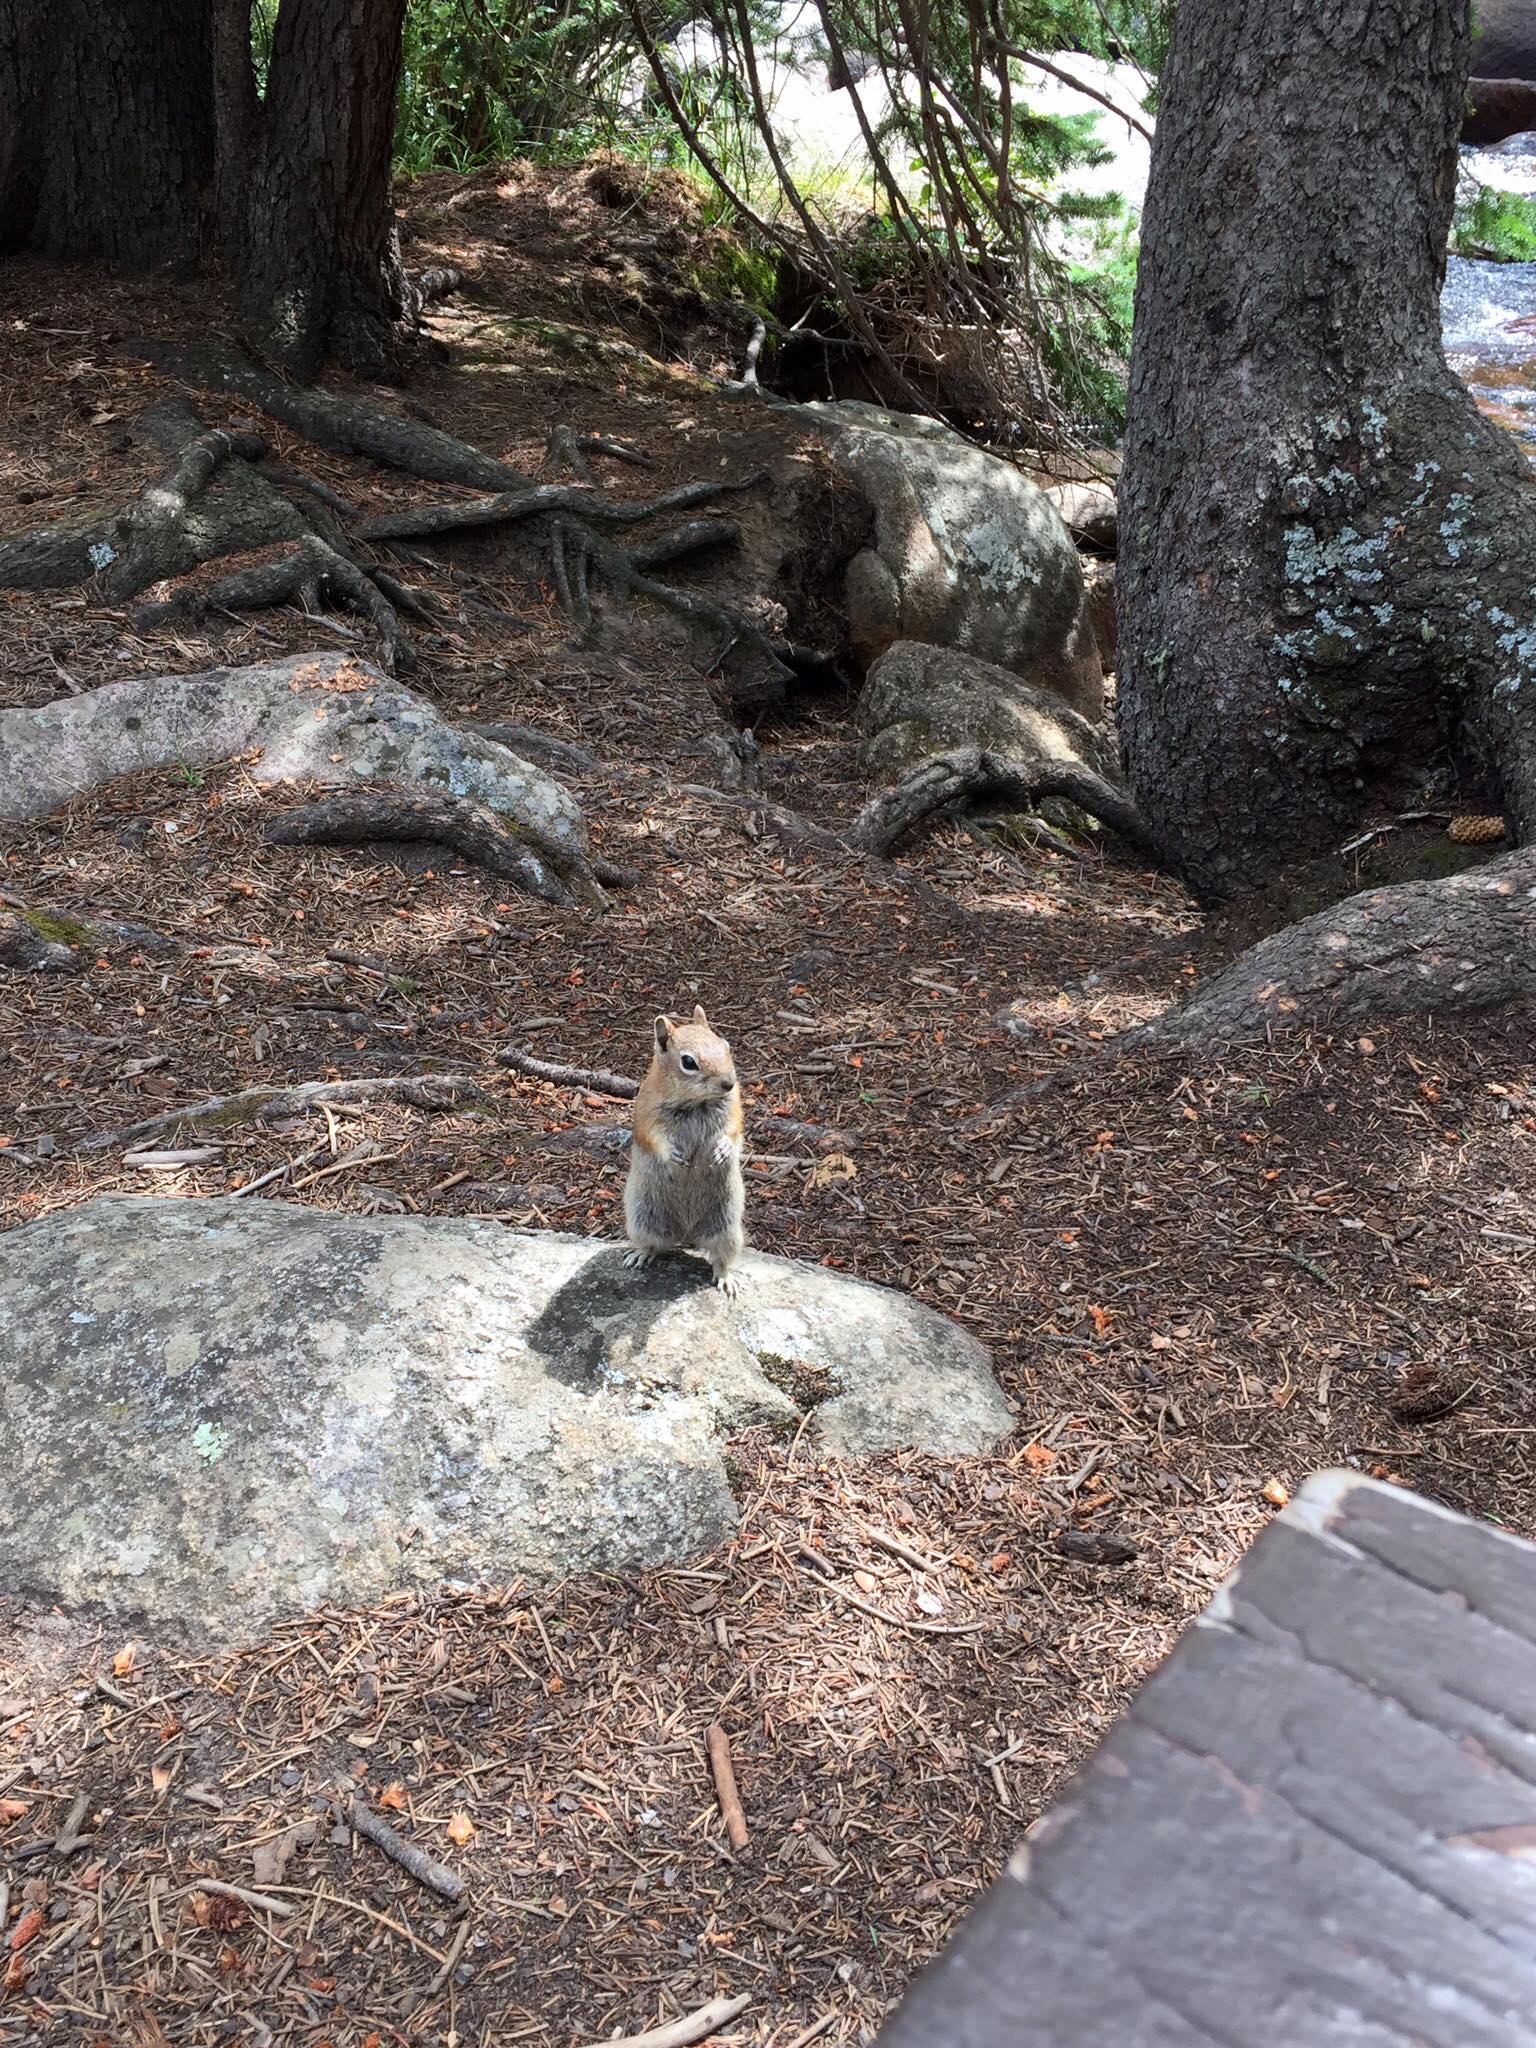 This little guy wanted all of our snacks. Sorry, but we can't feed you.